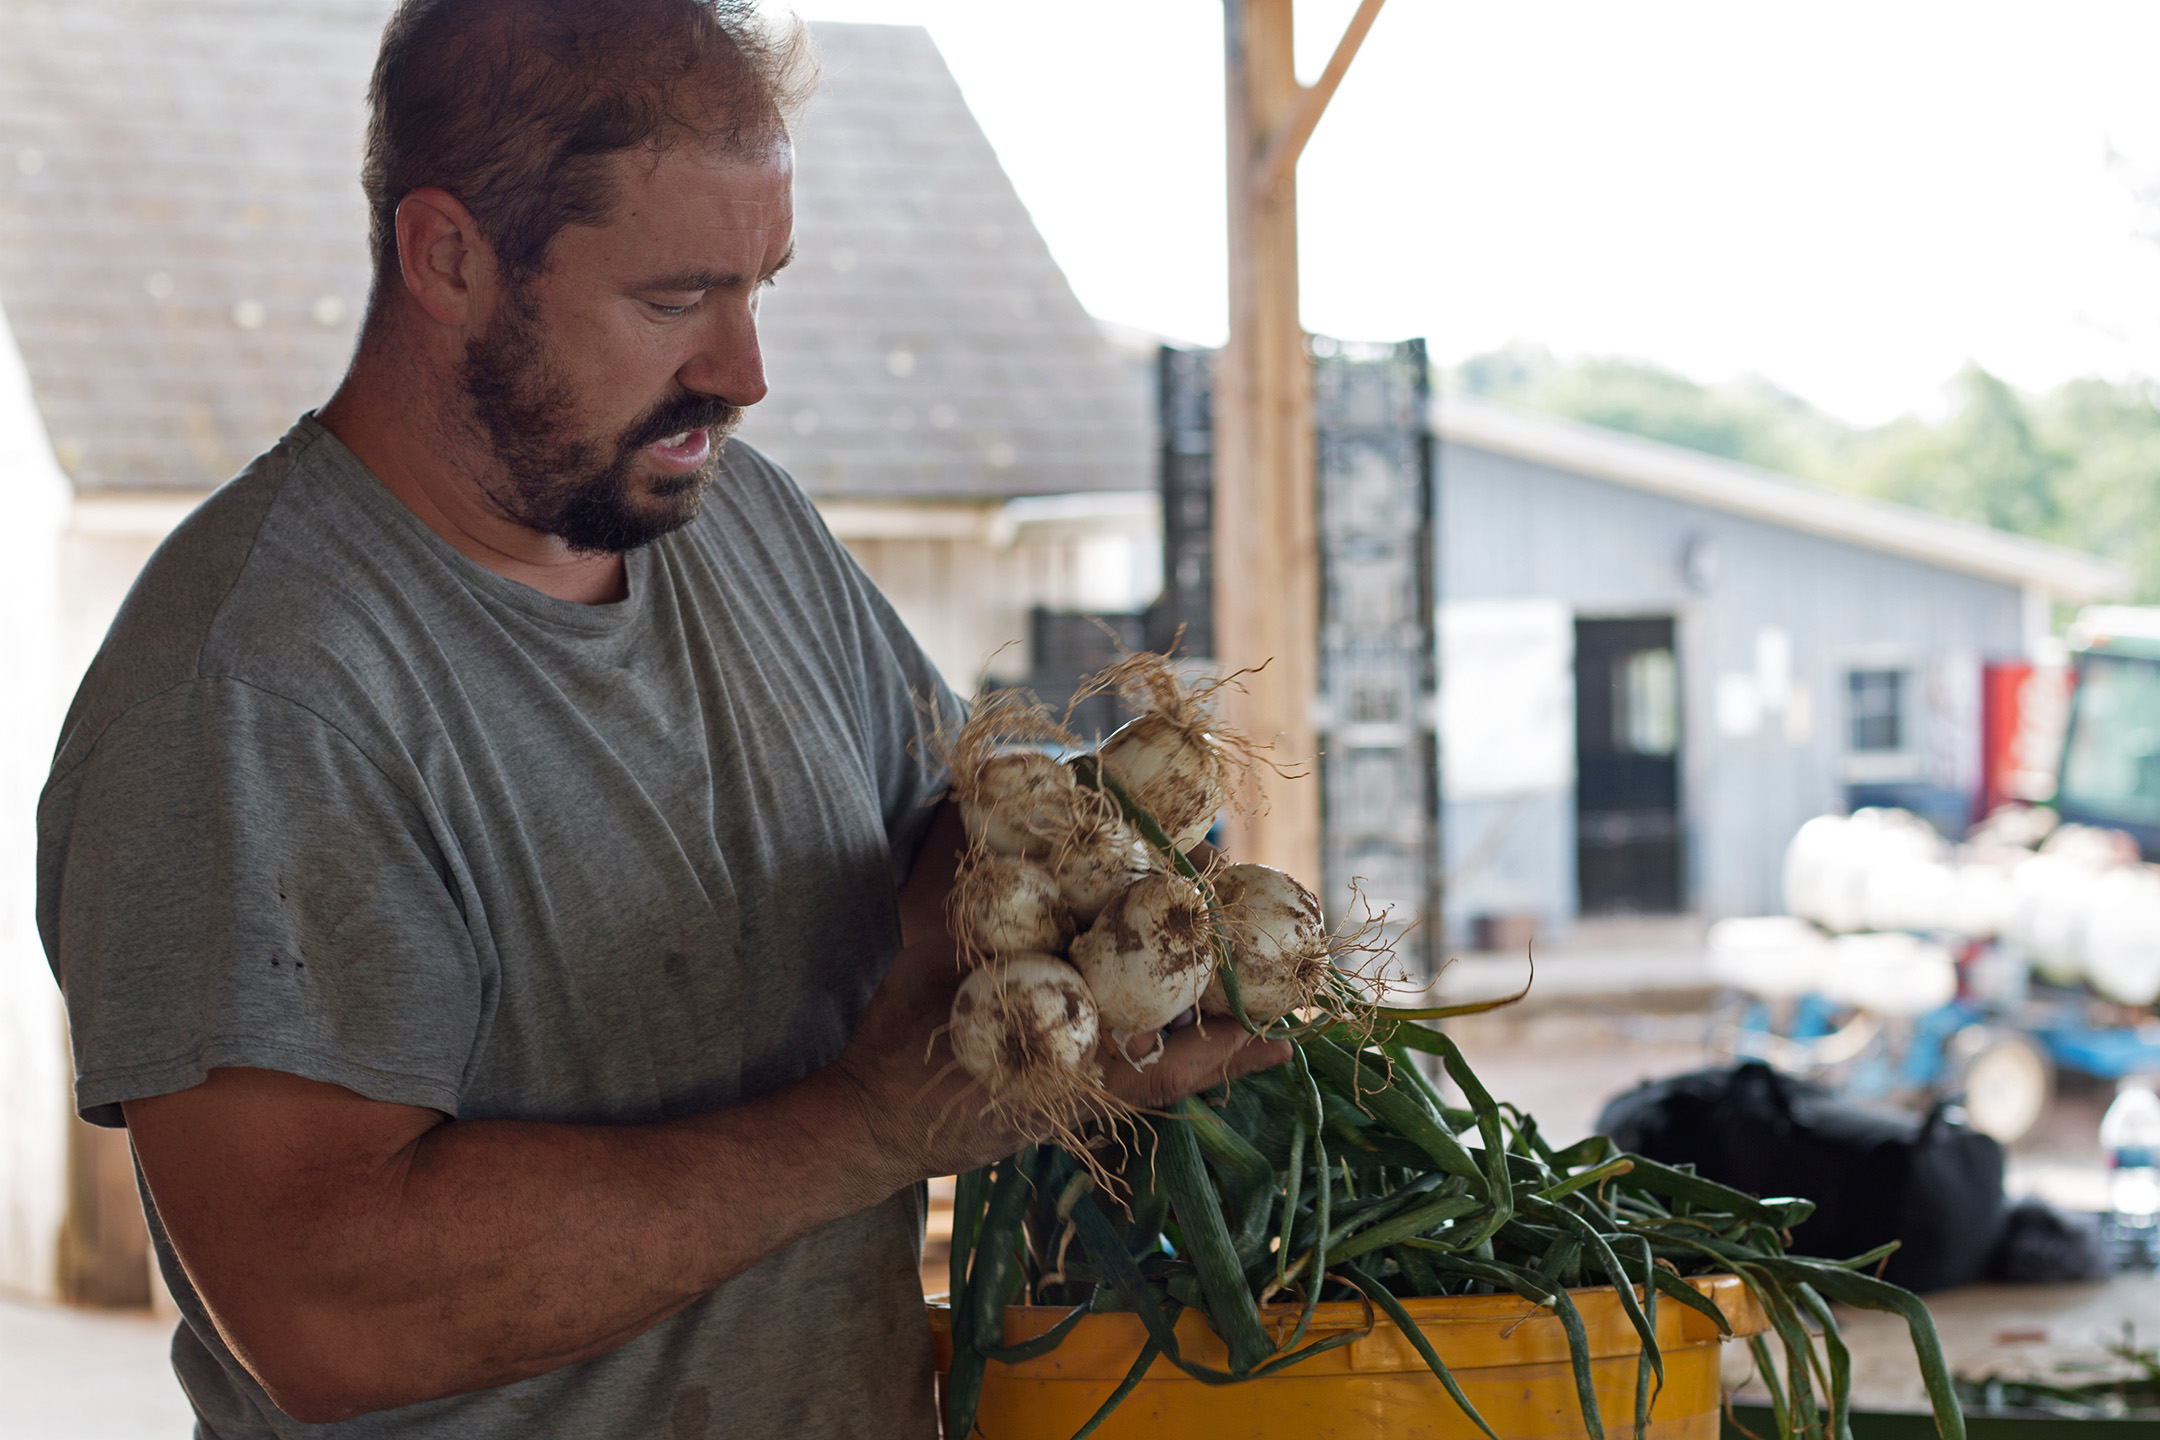 William DellaCamera shows off a bunch of freshly harvested onions on July 13th, 2018.